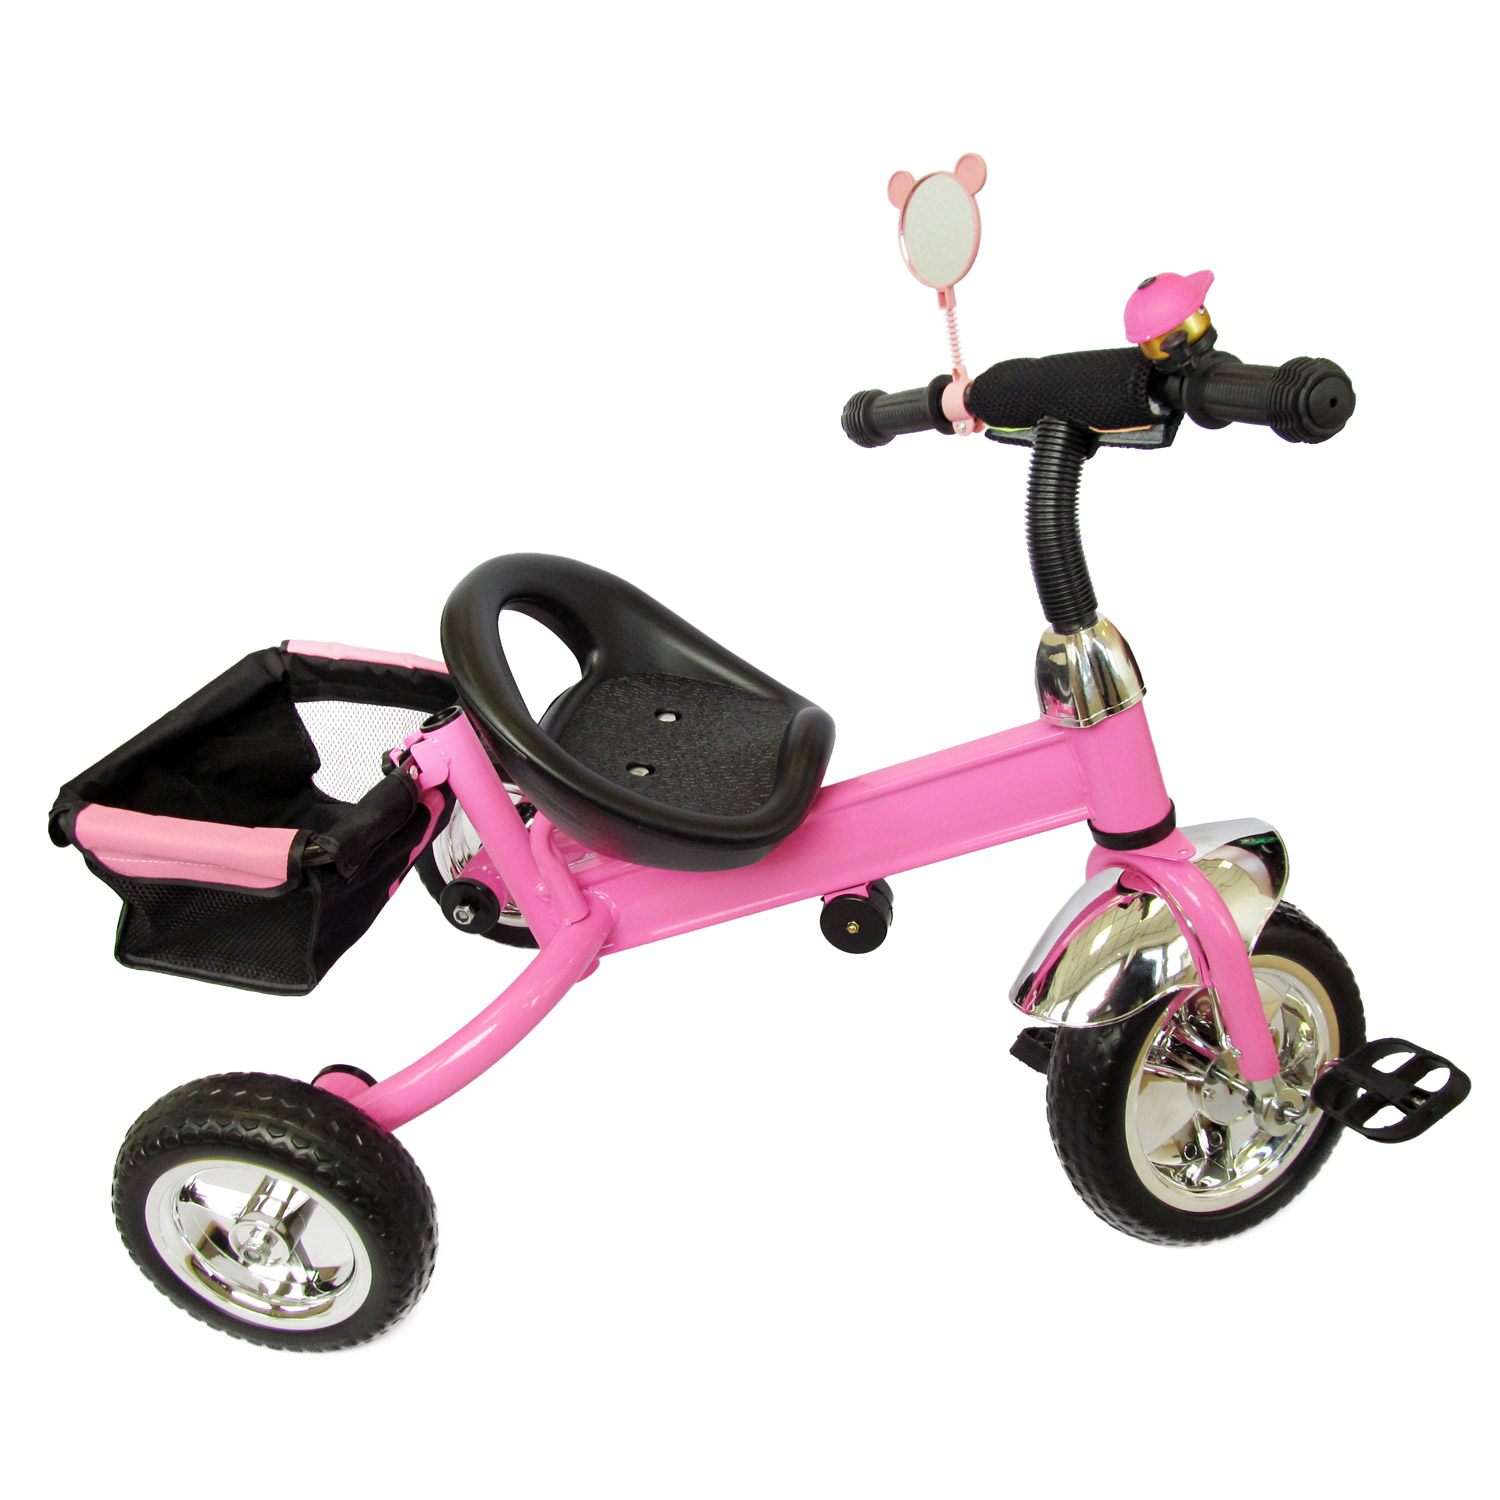 dreirad lenkstange kinder 2 5 jahre fahrrad pink ebay. Black Bedroom Furniture Sets. Home Design Ideas